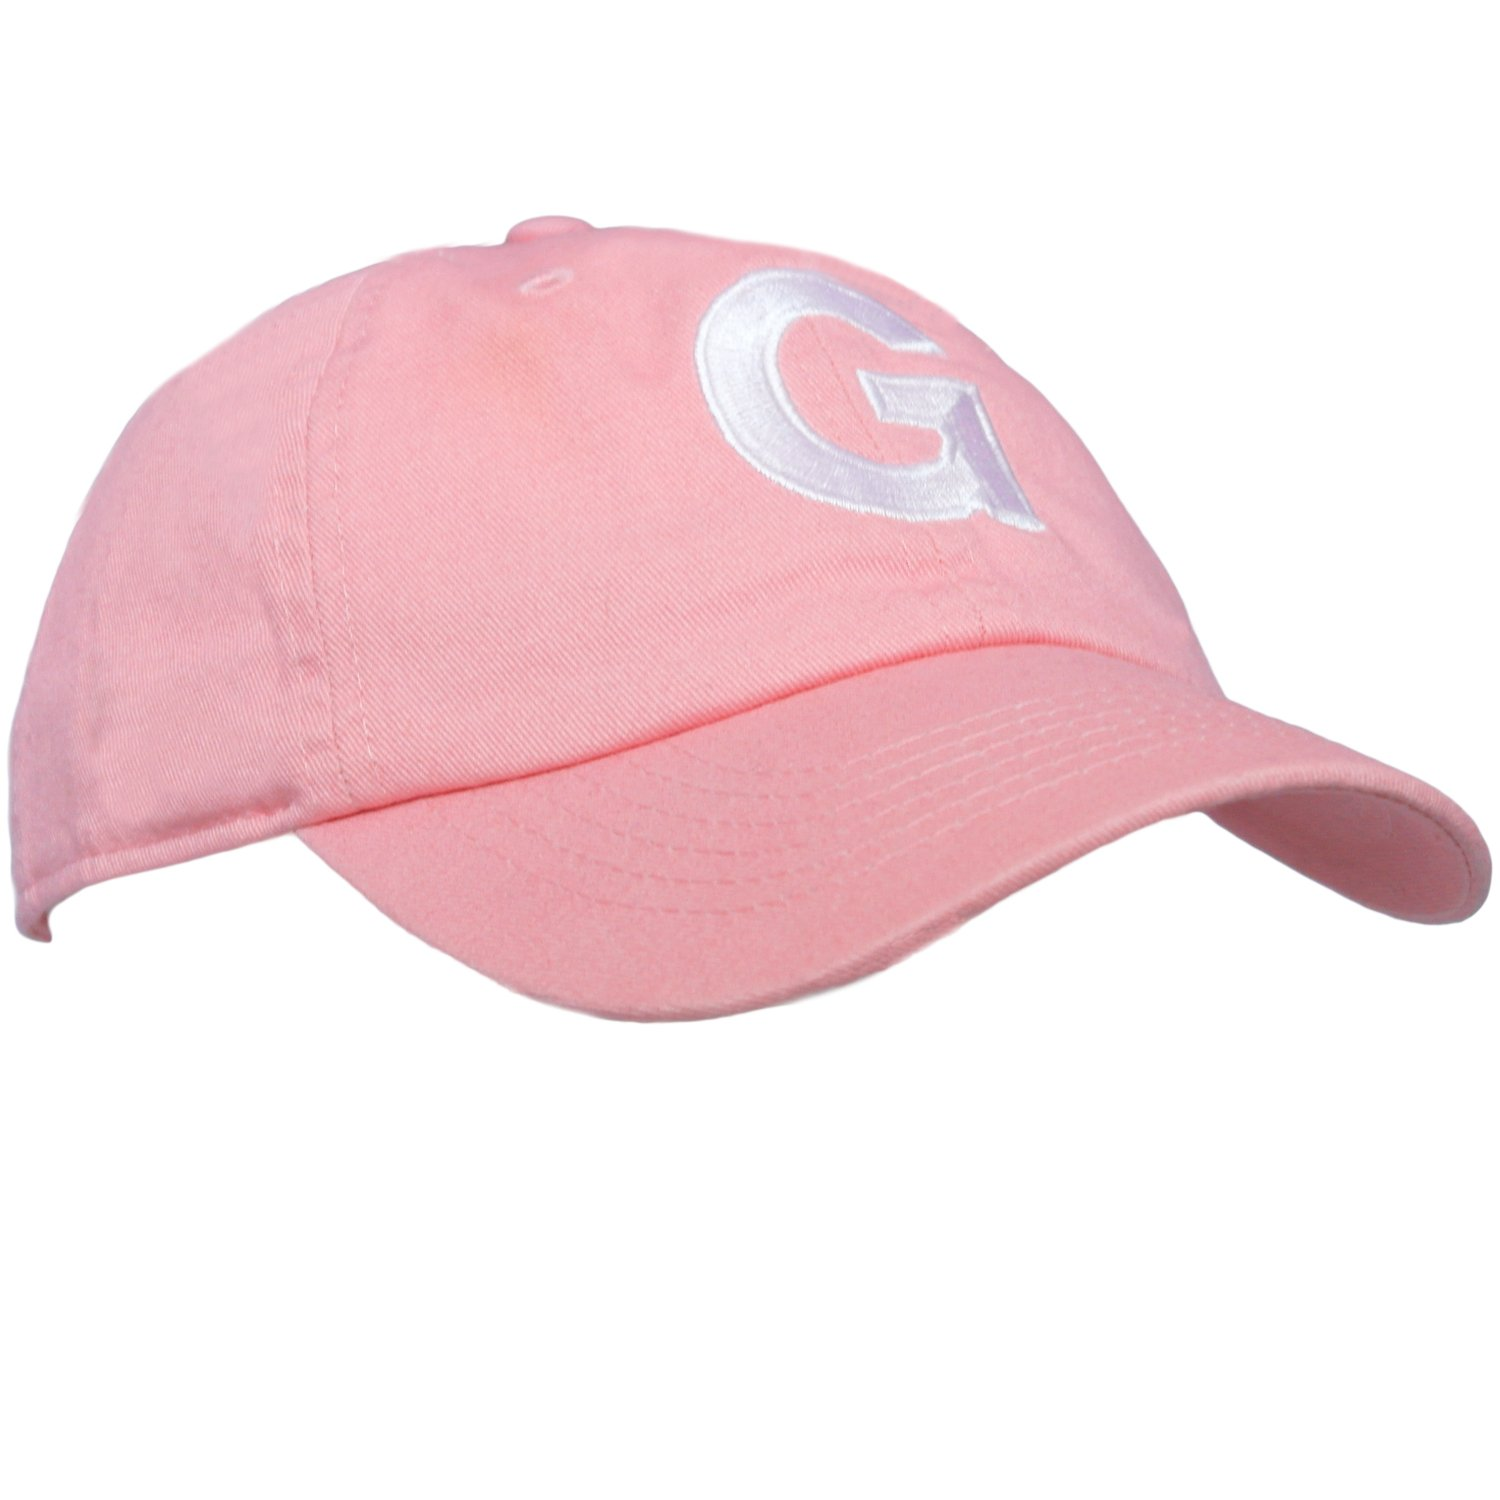 Tiny Expressions Toddler Girls' Pink Embroidered Initial Baseball Hat Monogrammed Cap (G, 2-6yrs)